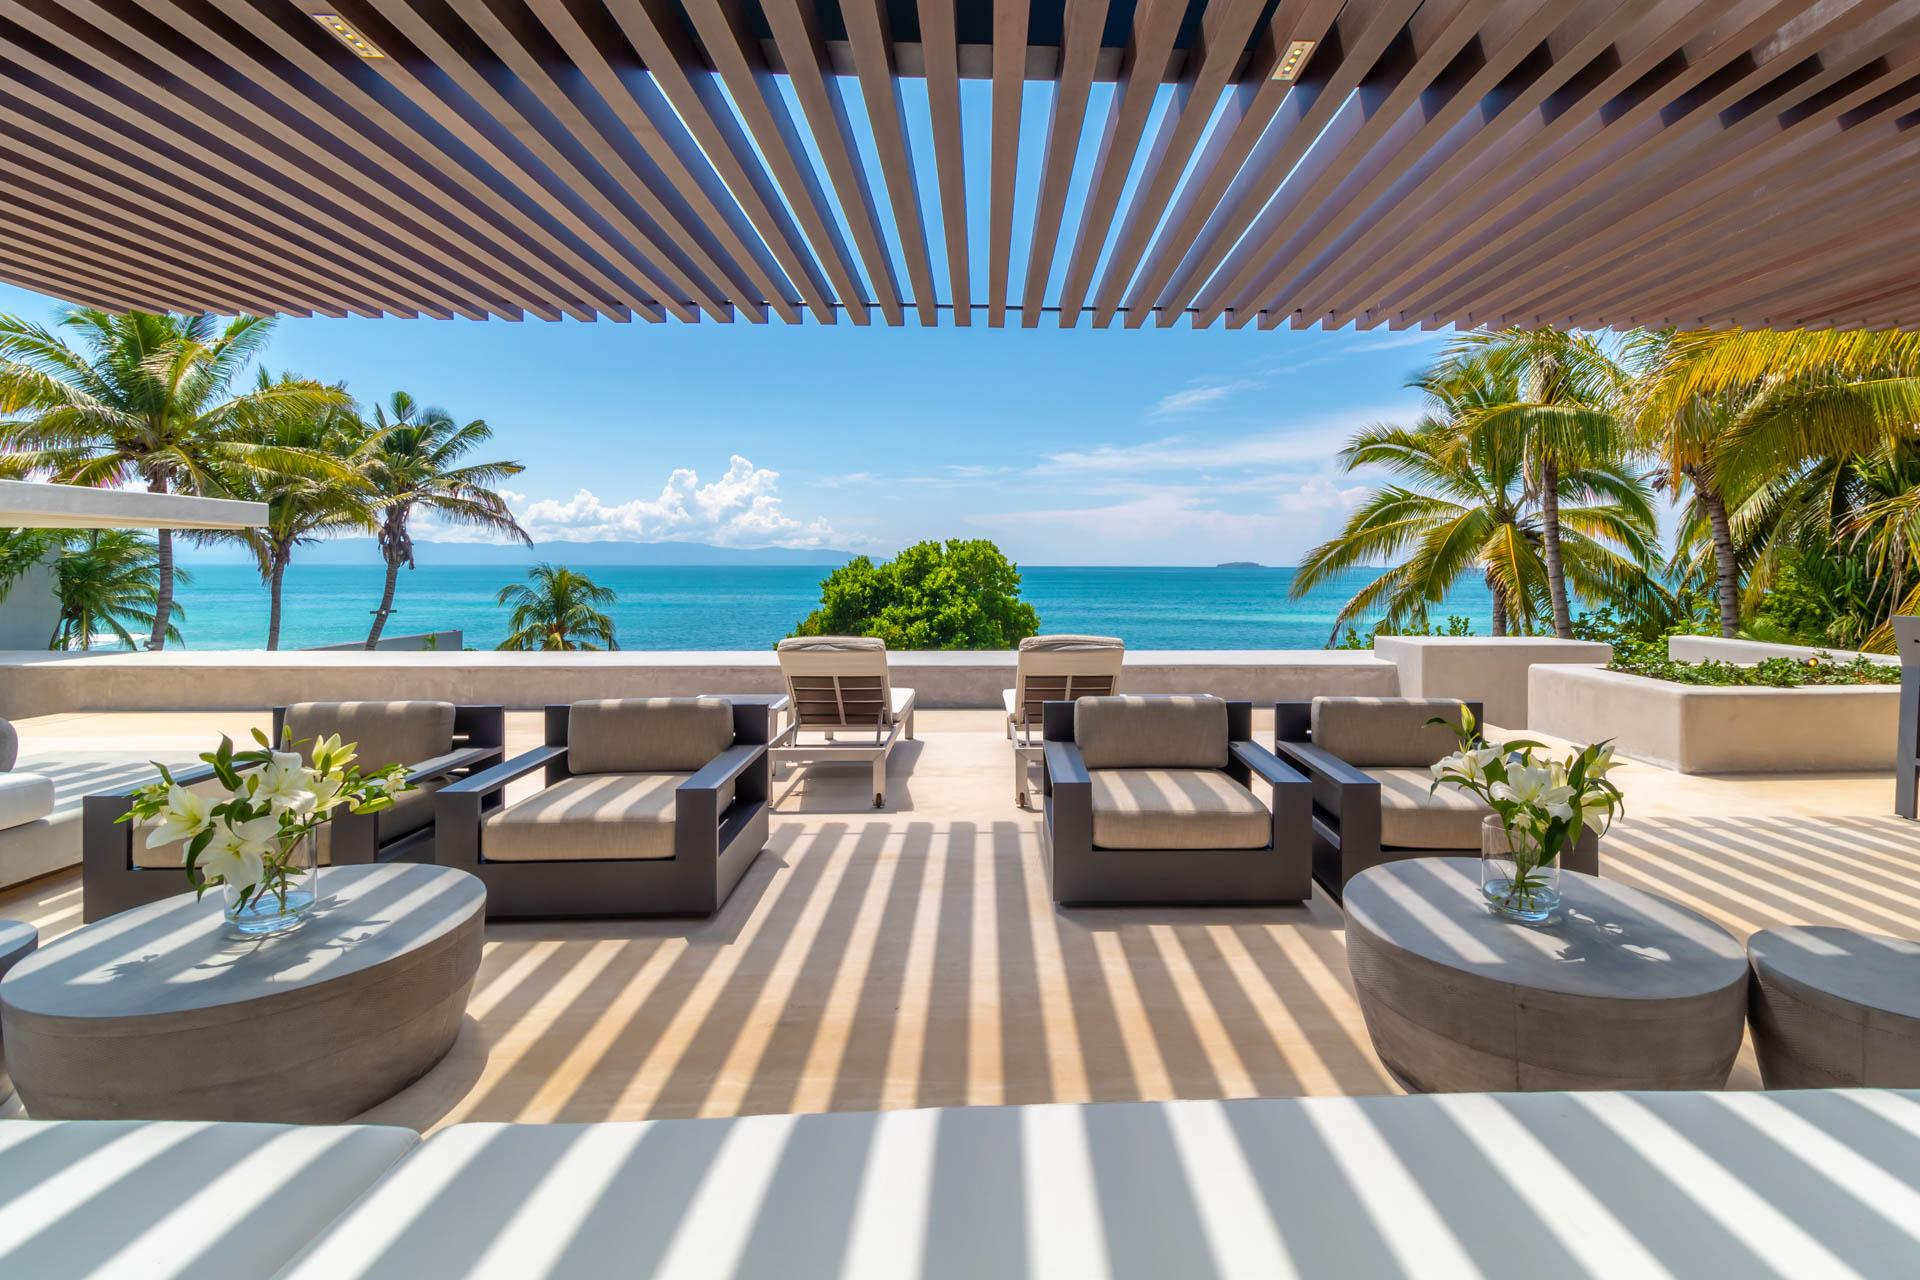 Property Image 2 - Mesmerizing Sleek Designed Beachfront Sanctuary Villa